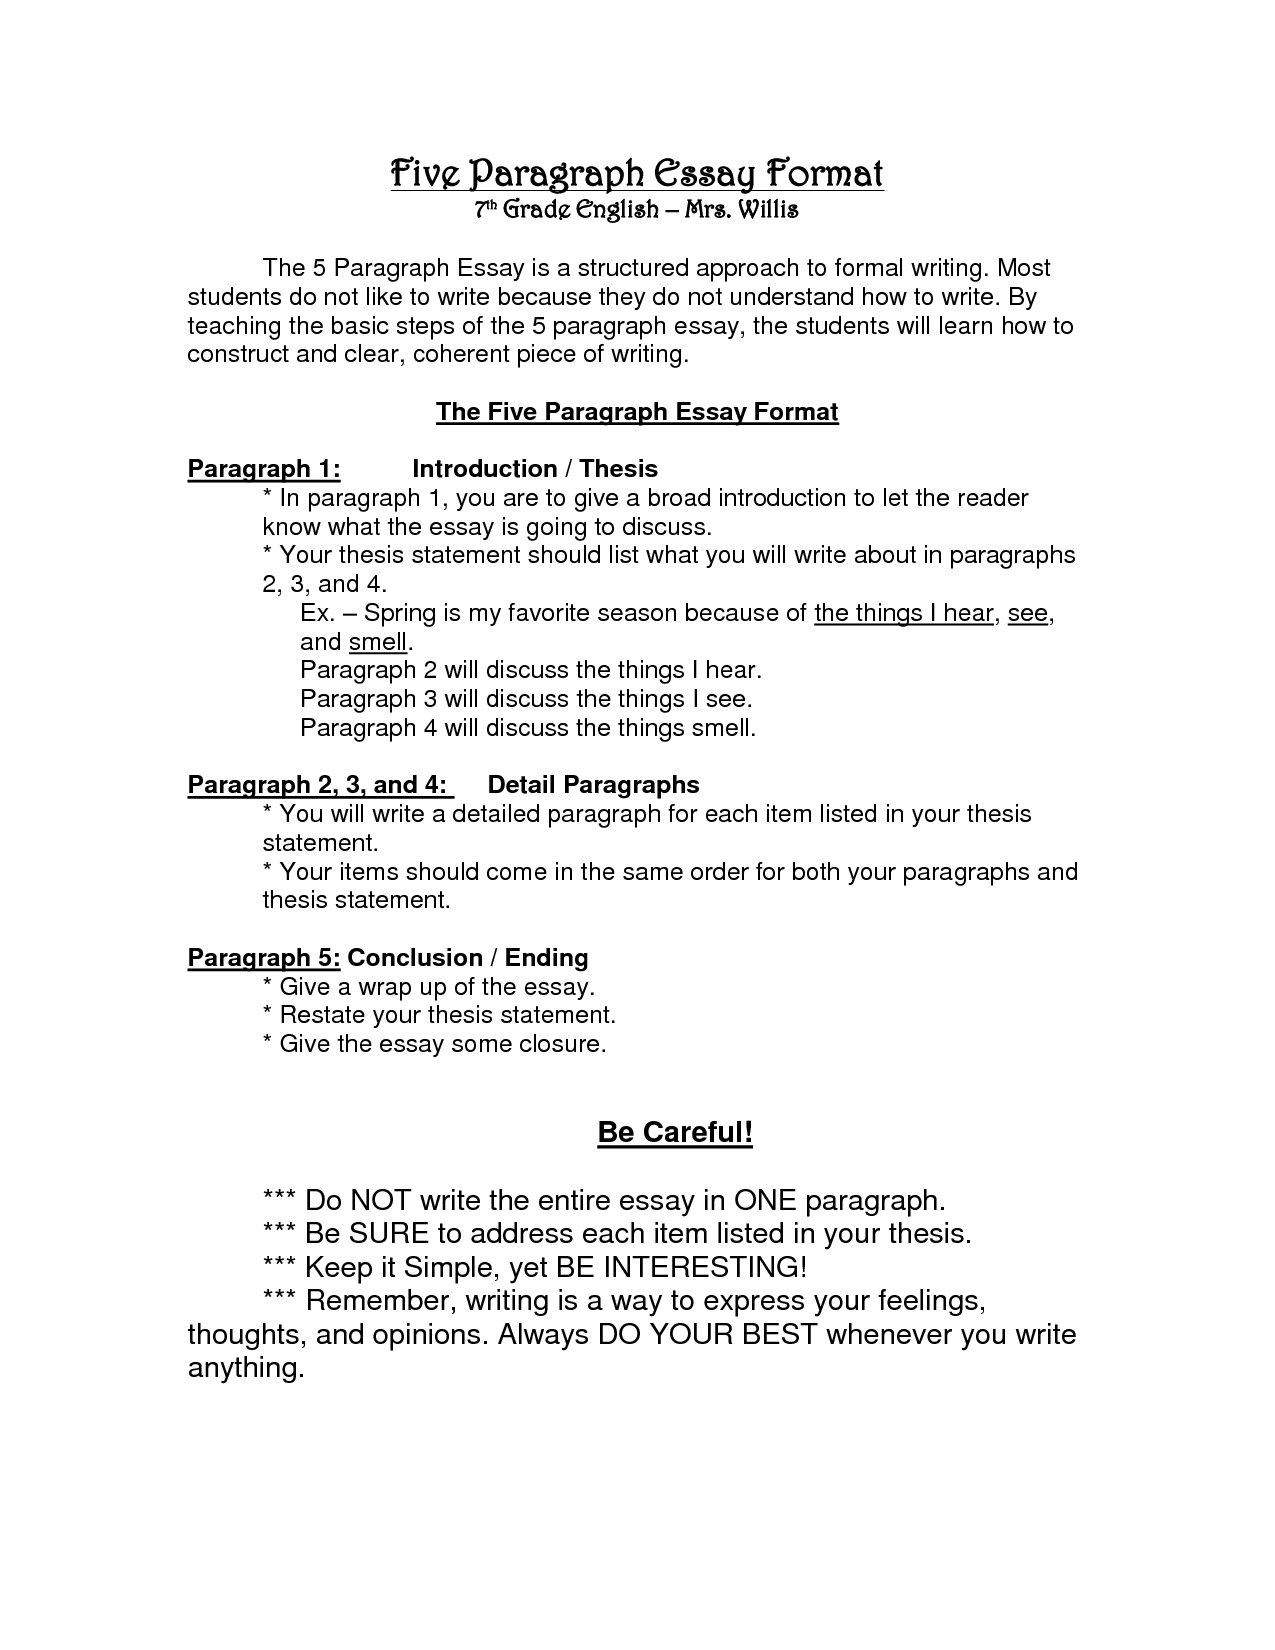 025 Paragraph Essay Outline Template Formats 96536 Fearsome 5 Persuasive Free Full